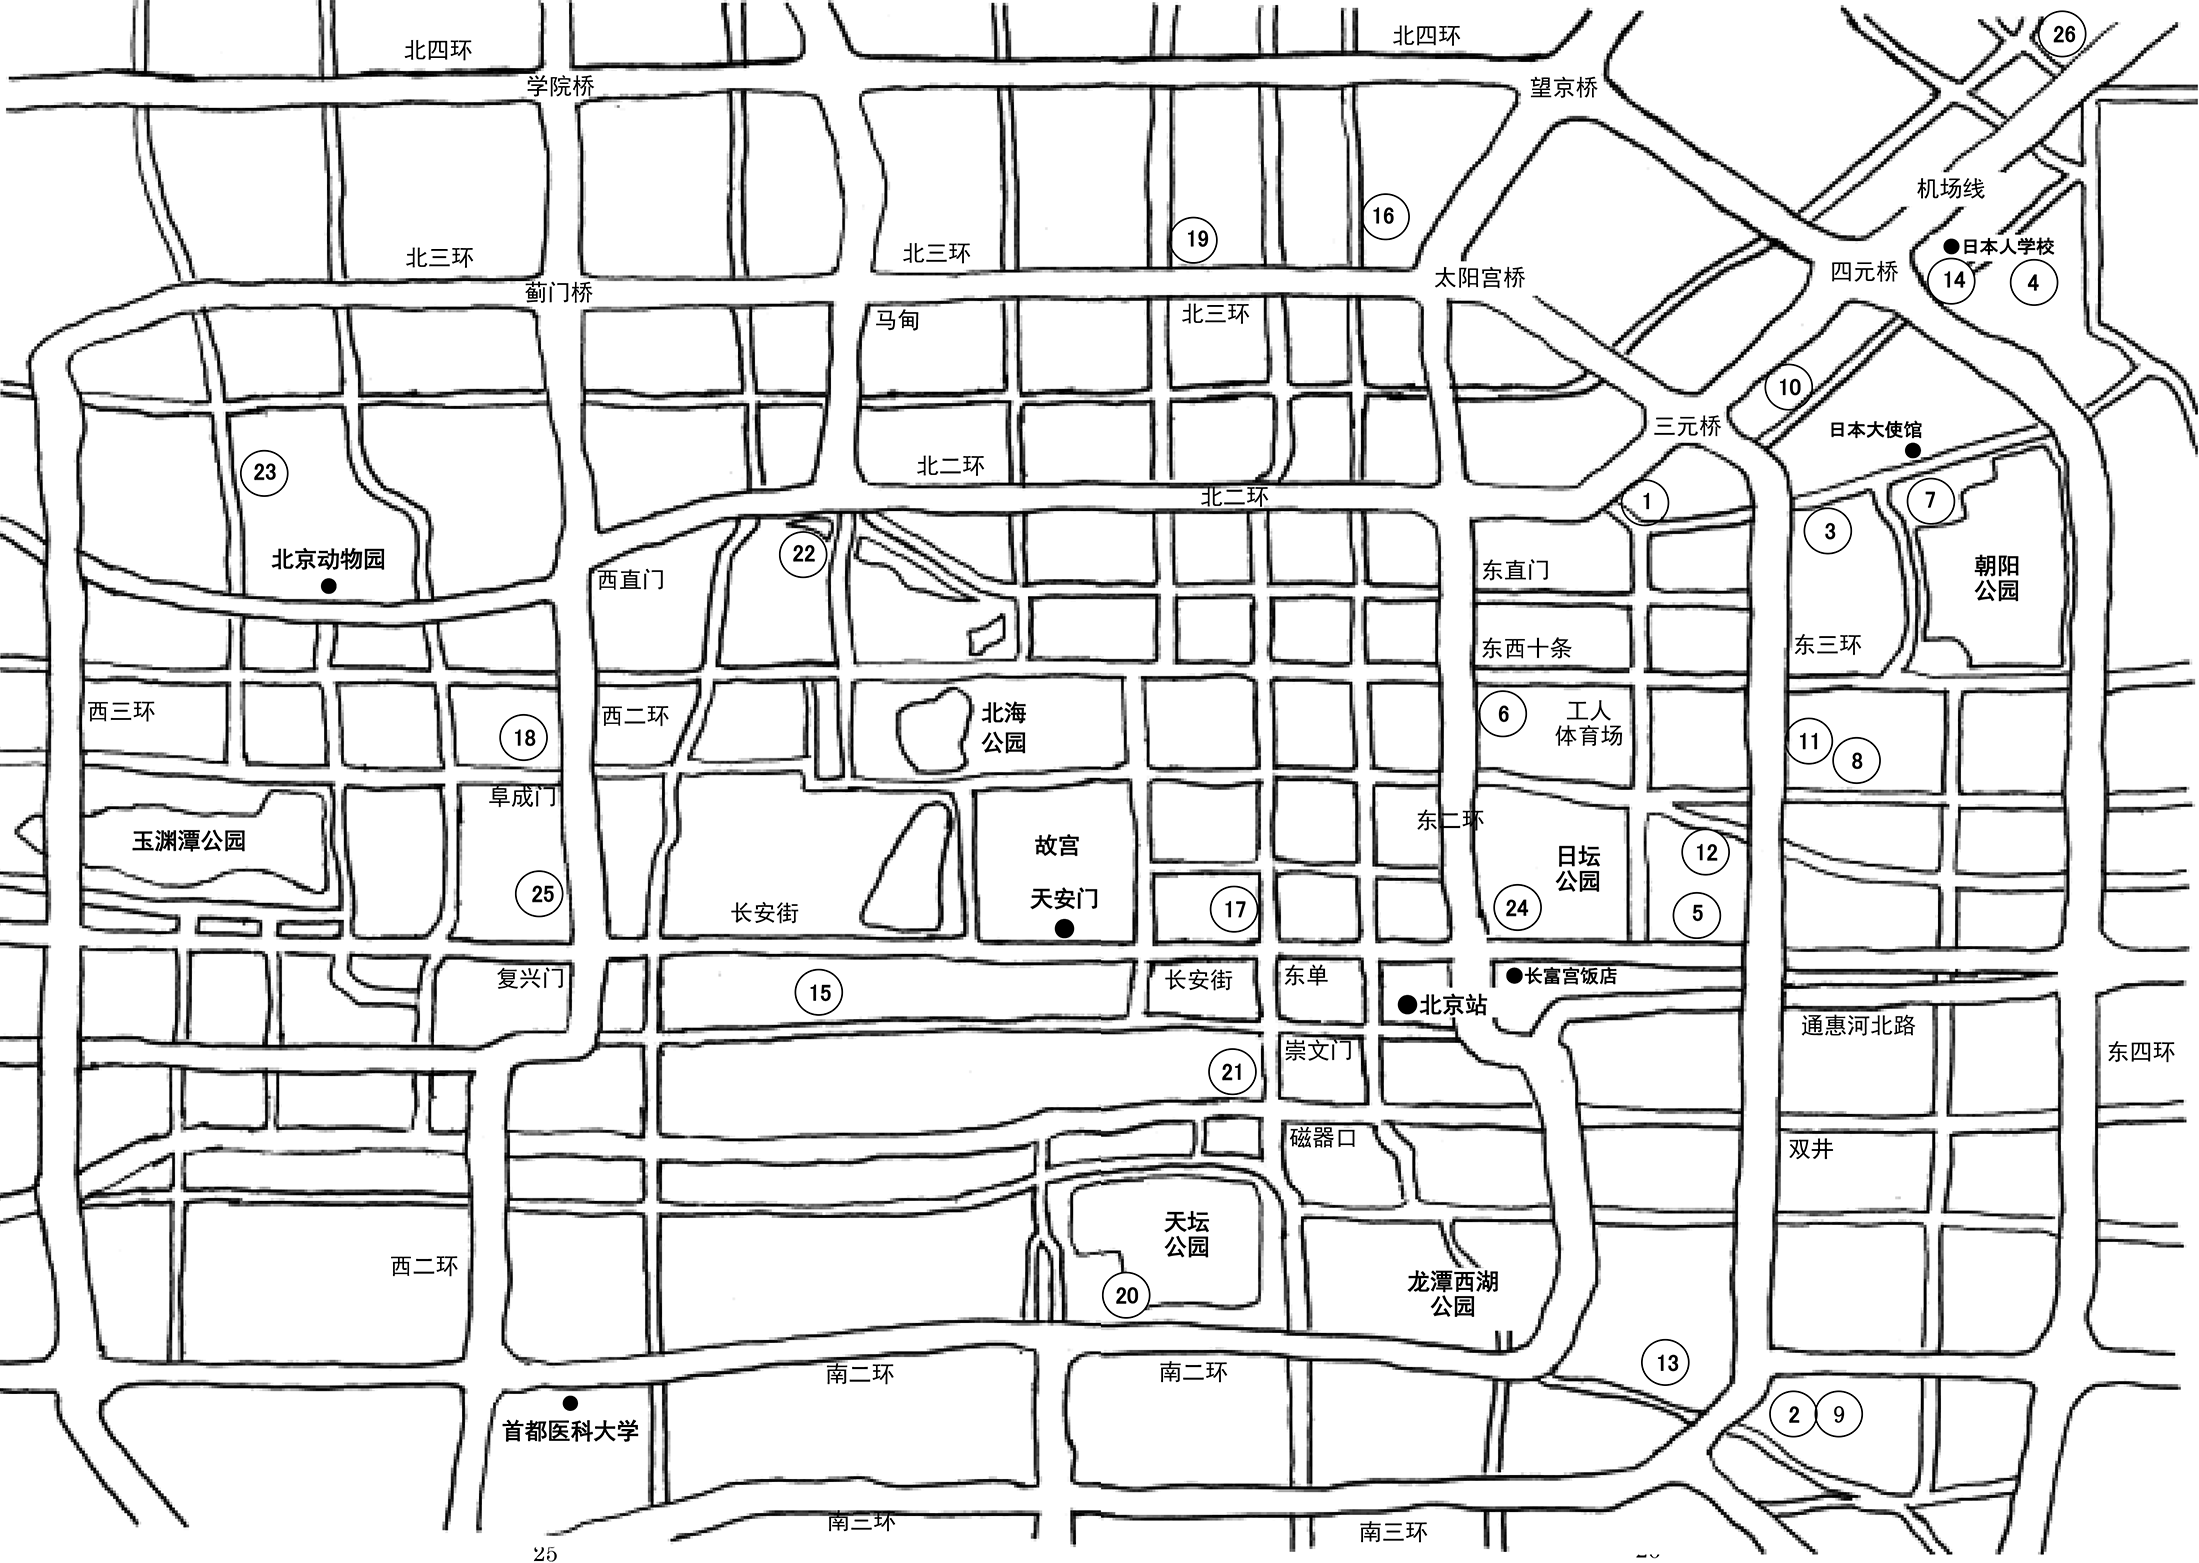 MAP_170913a